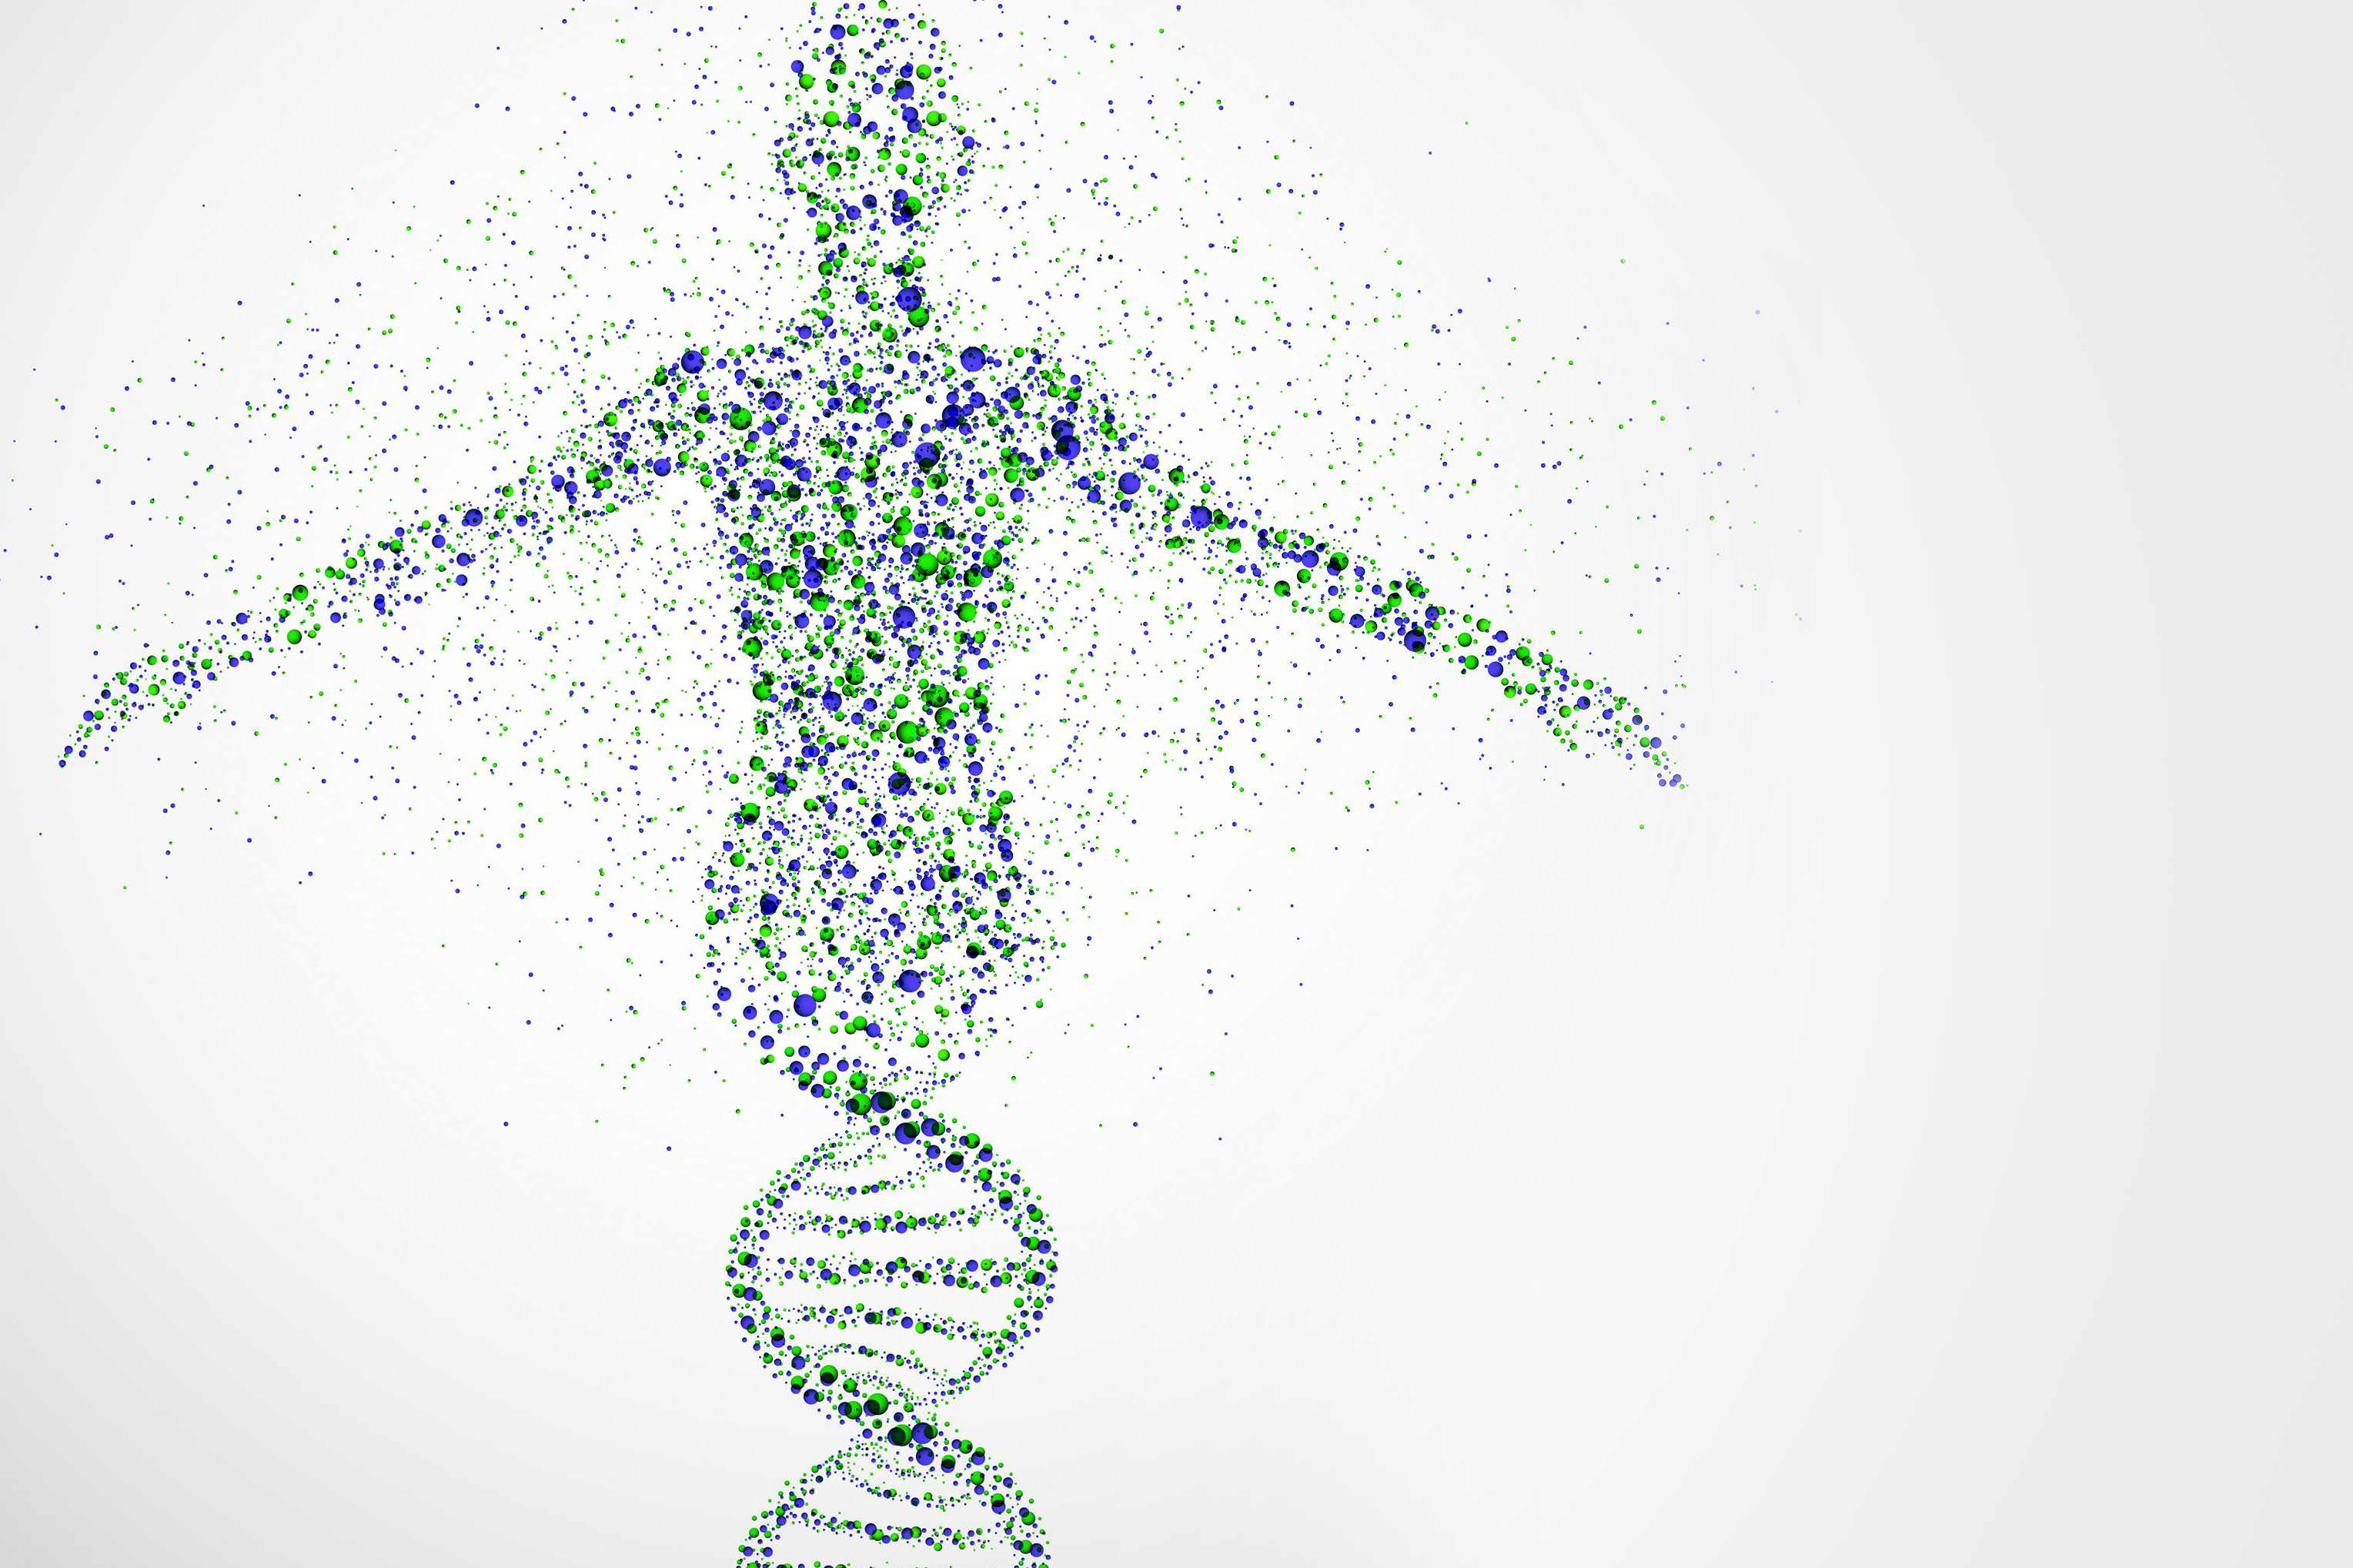 Scientists build dna from scratch to alter lifes blueprint malvernweather Choice Image